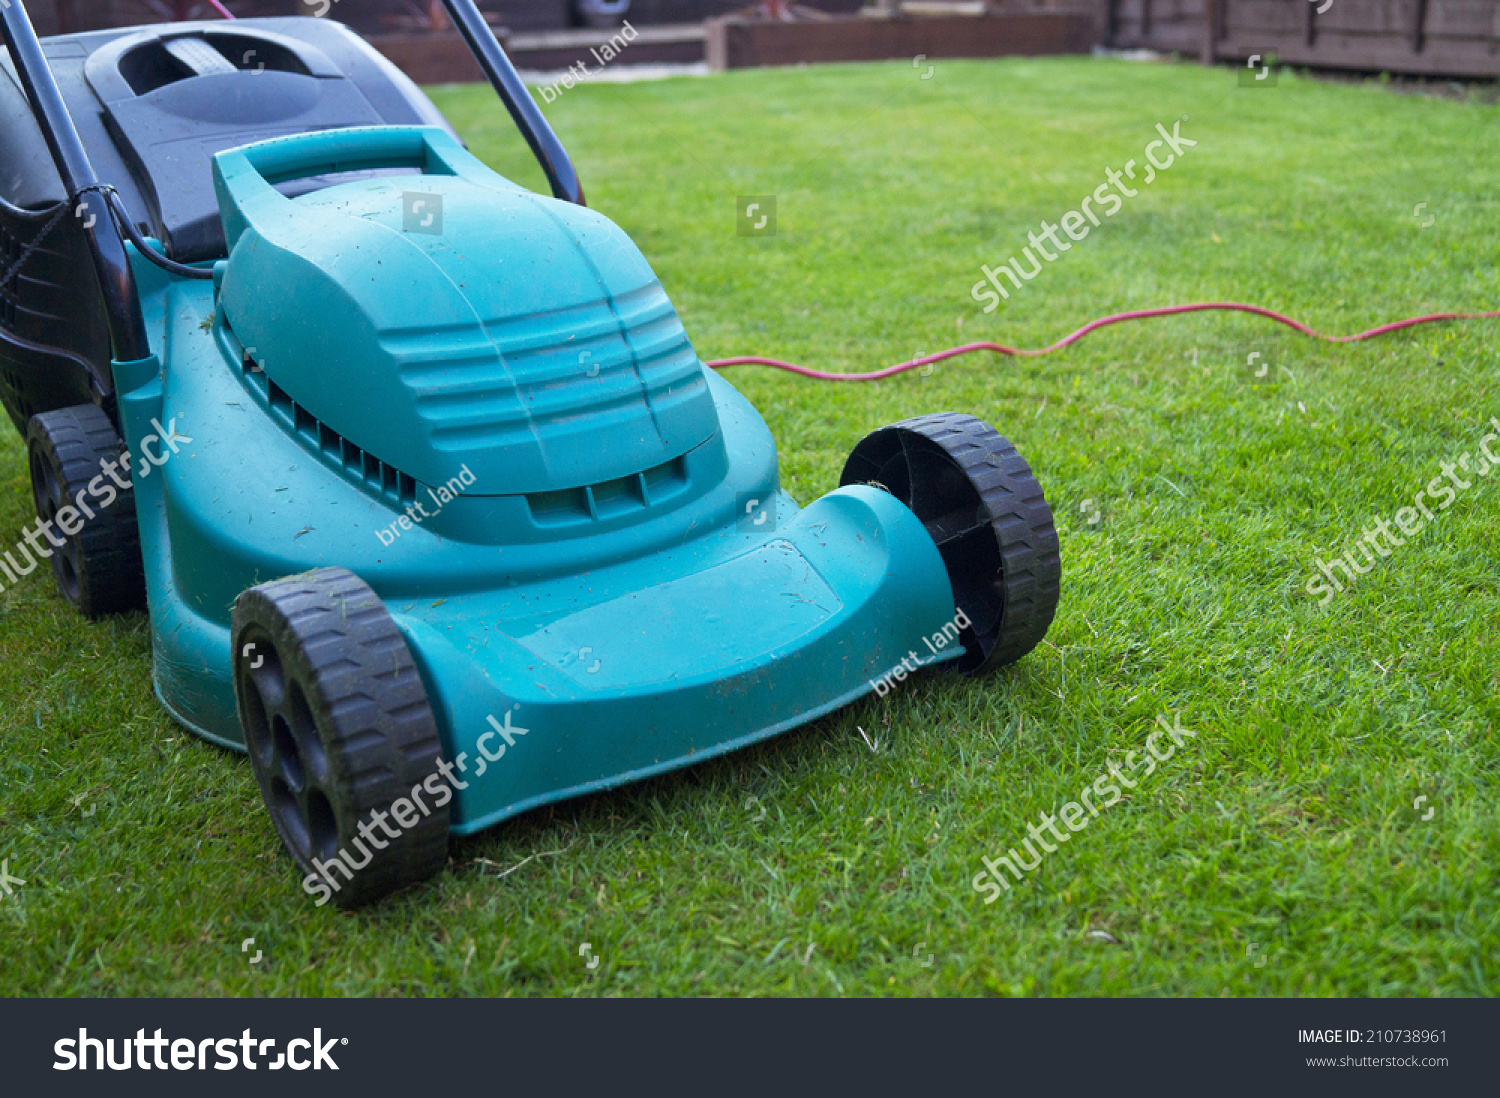 Lawn Mower London Ontario Lawn Mower Stock Photo Edit Now 210738961 Shutterstock